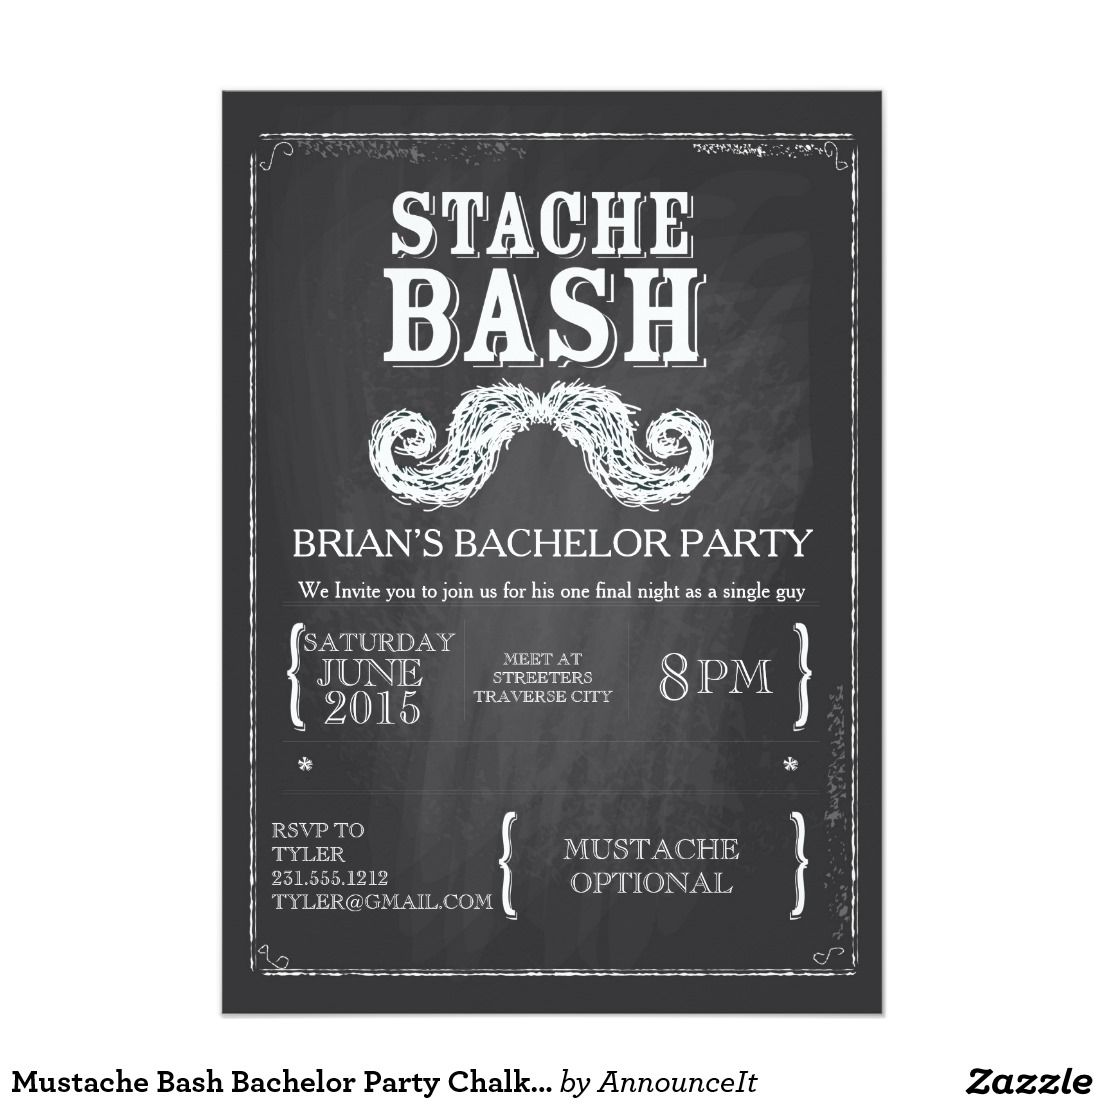 Mustache bash bachelor party chalkboard hipster card bachelor bachelor party invitations monicamarmolfo Choice Image